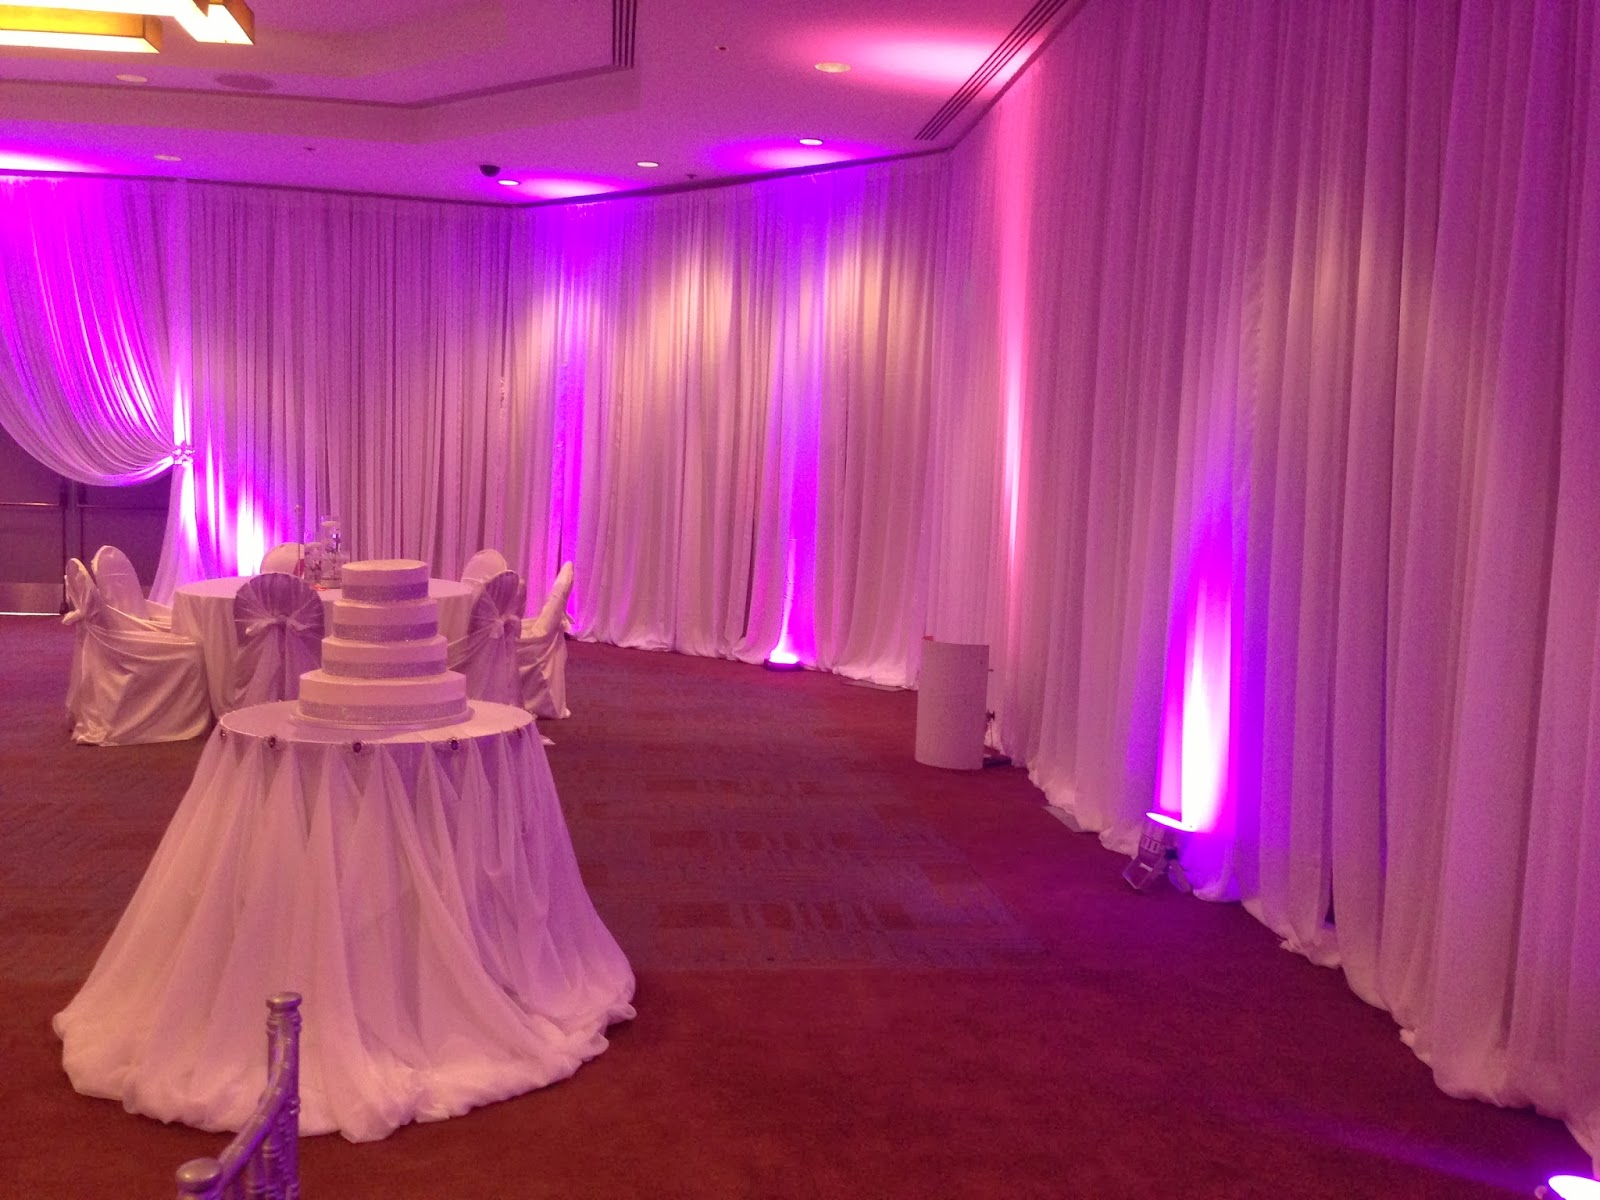 Purple Rain Our Customers Are Awesome Client Wanted Her Wedding Theme To Be Electric Up Lights In Hot Pink And With Crystal